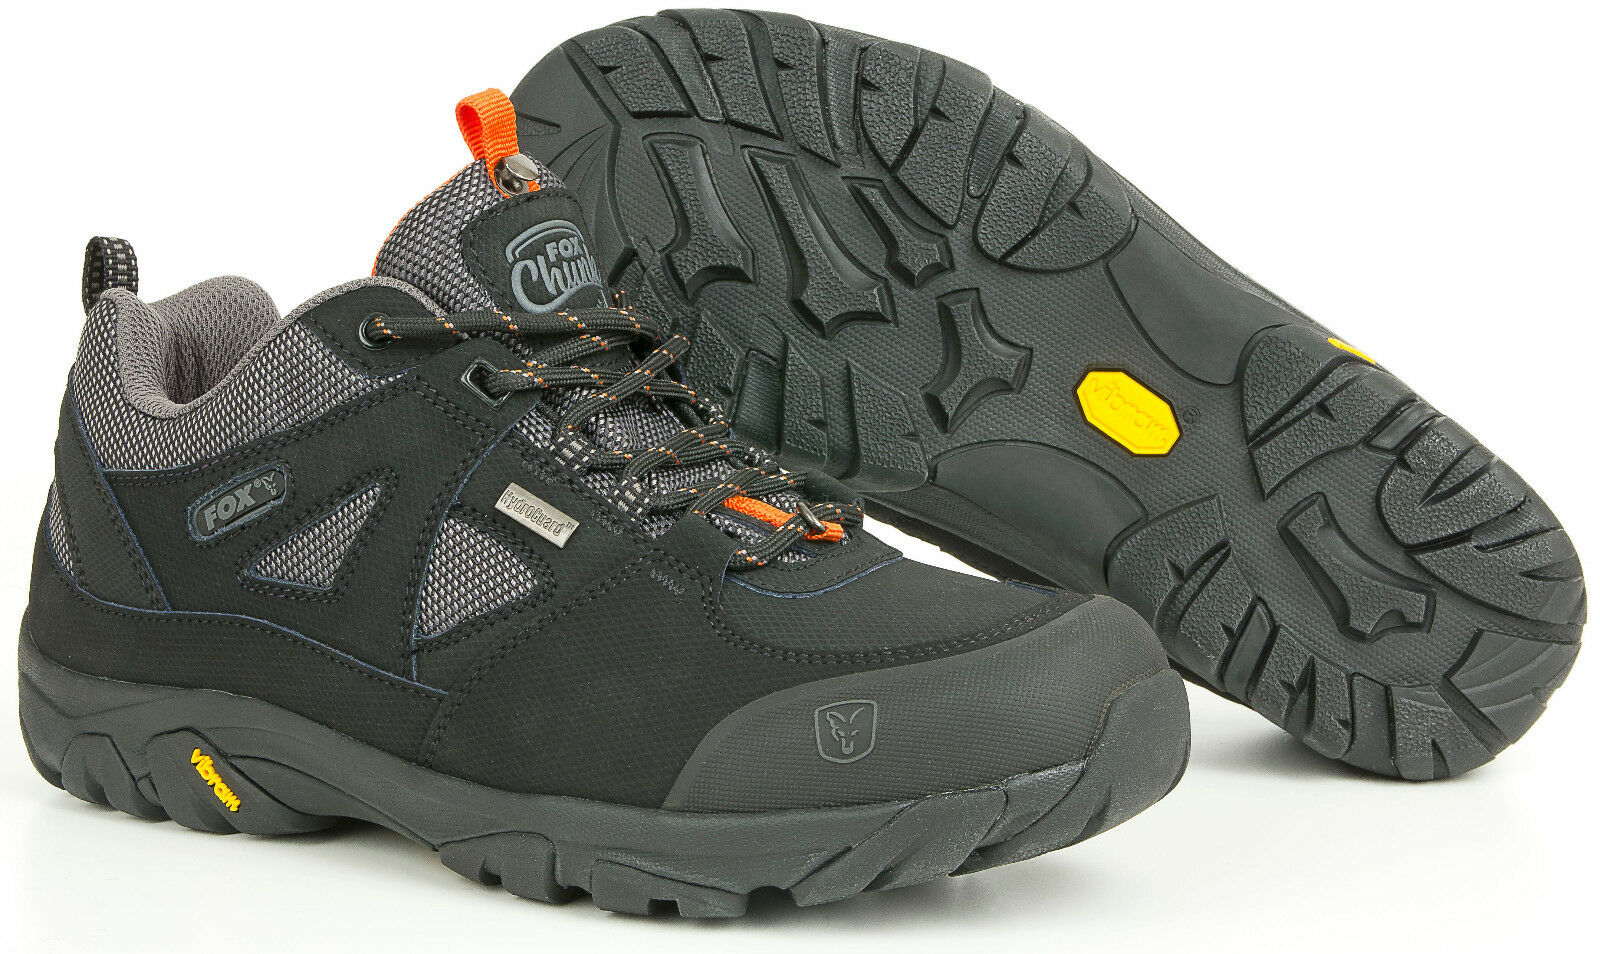 Fox Chunk Footwear Explorer shoes Waterproof  Trainers Vibram Sole Carp Fishing  factory direct and quick delivery